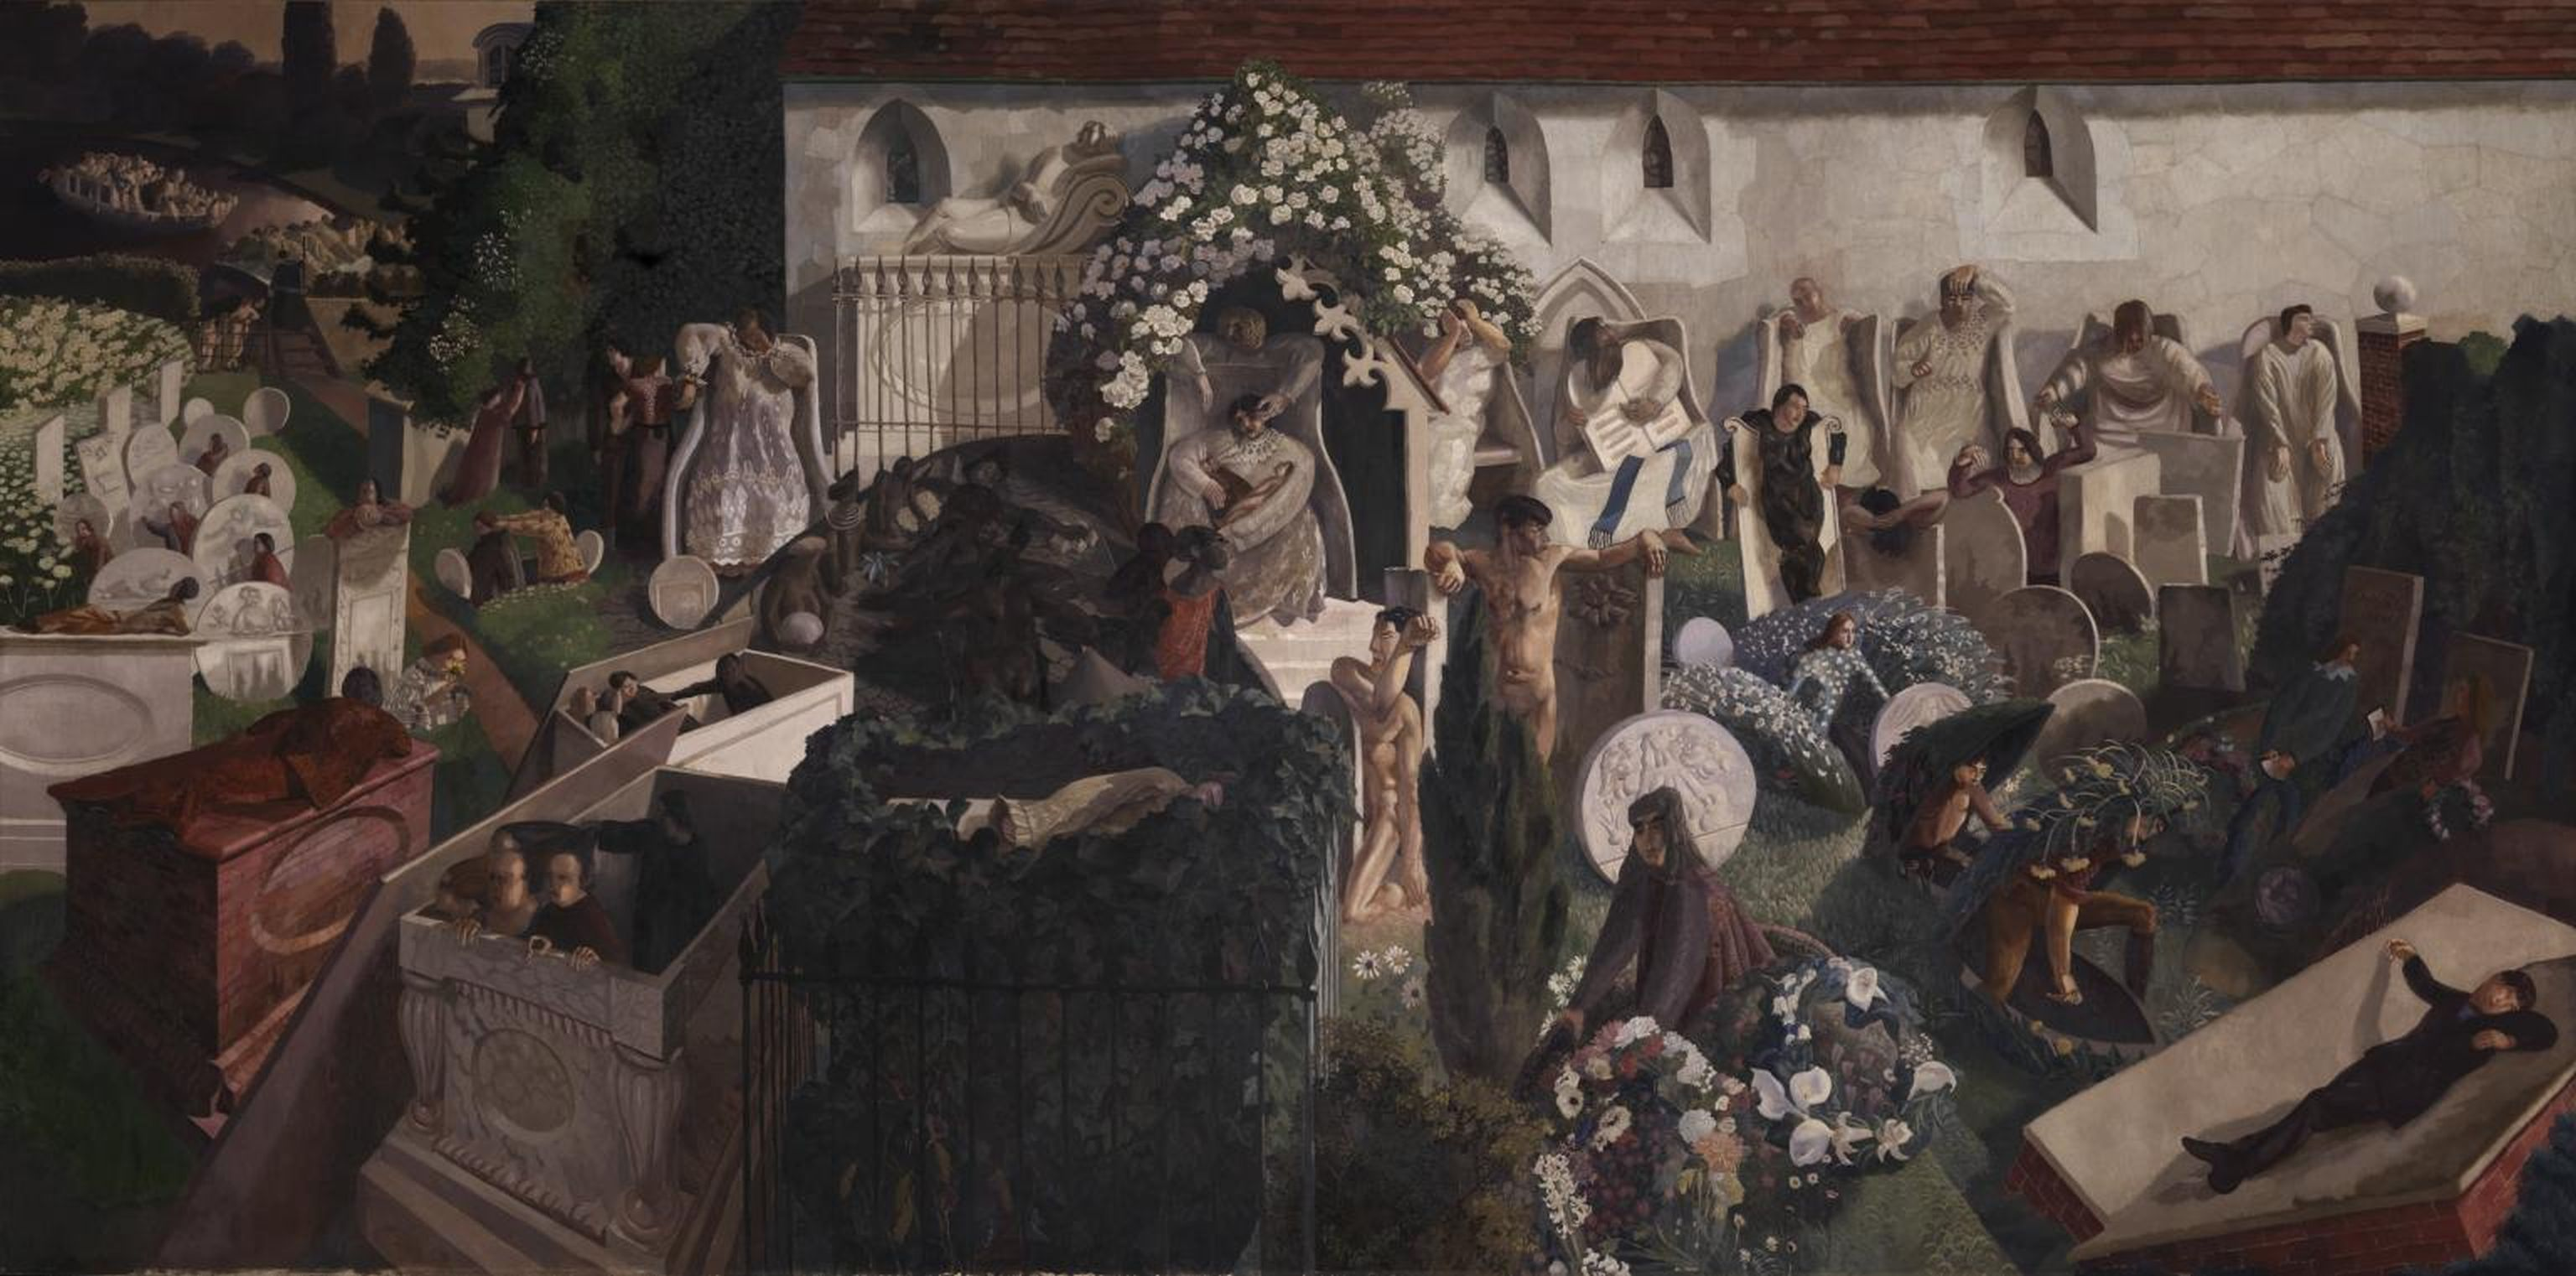 The Resurrection, Cookham 1924-7 by Sir Stanley Spencer 1891-1959